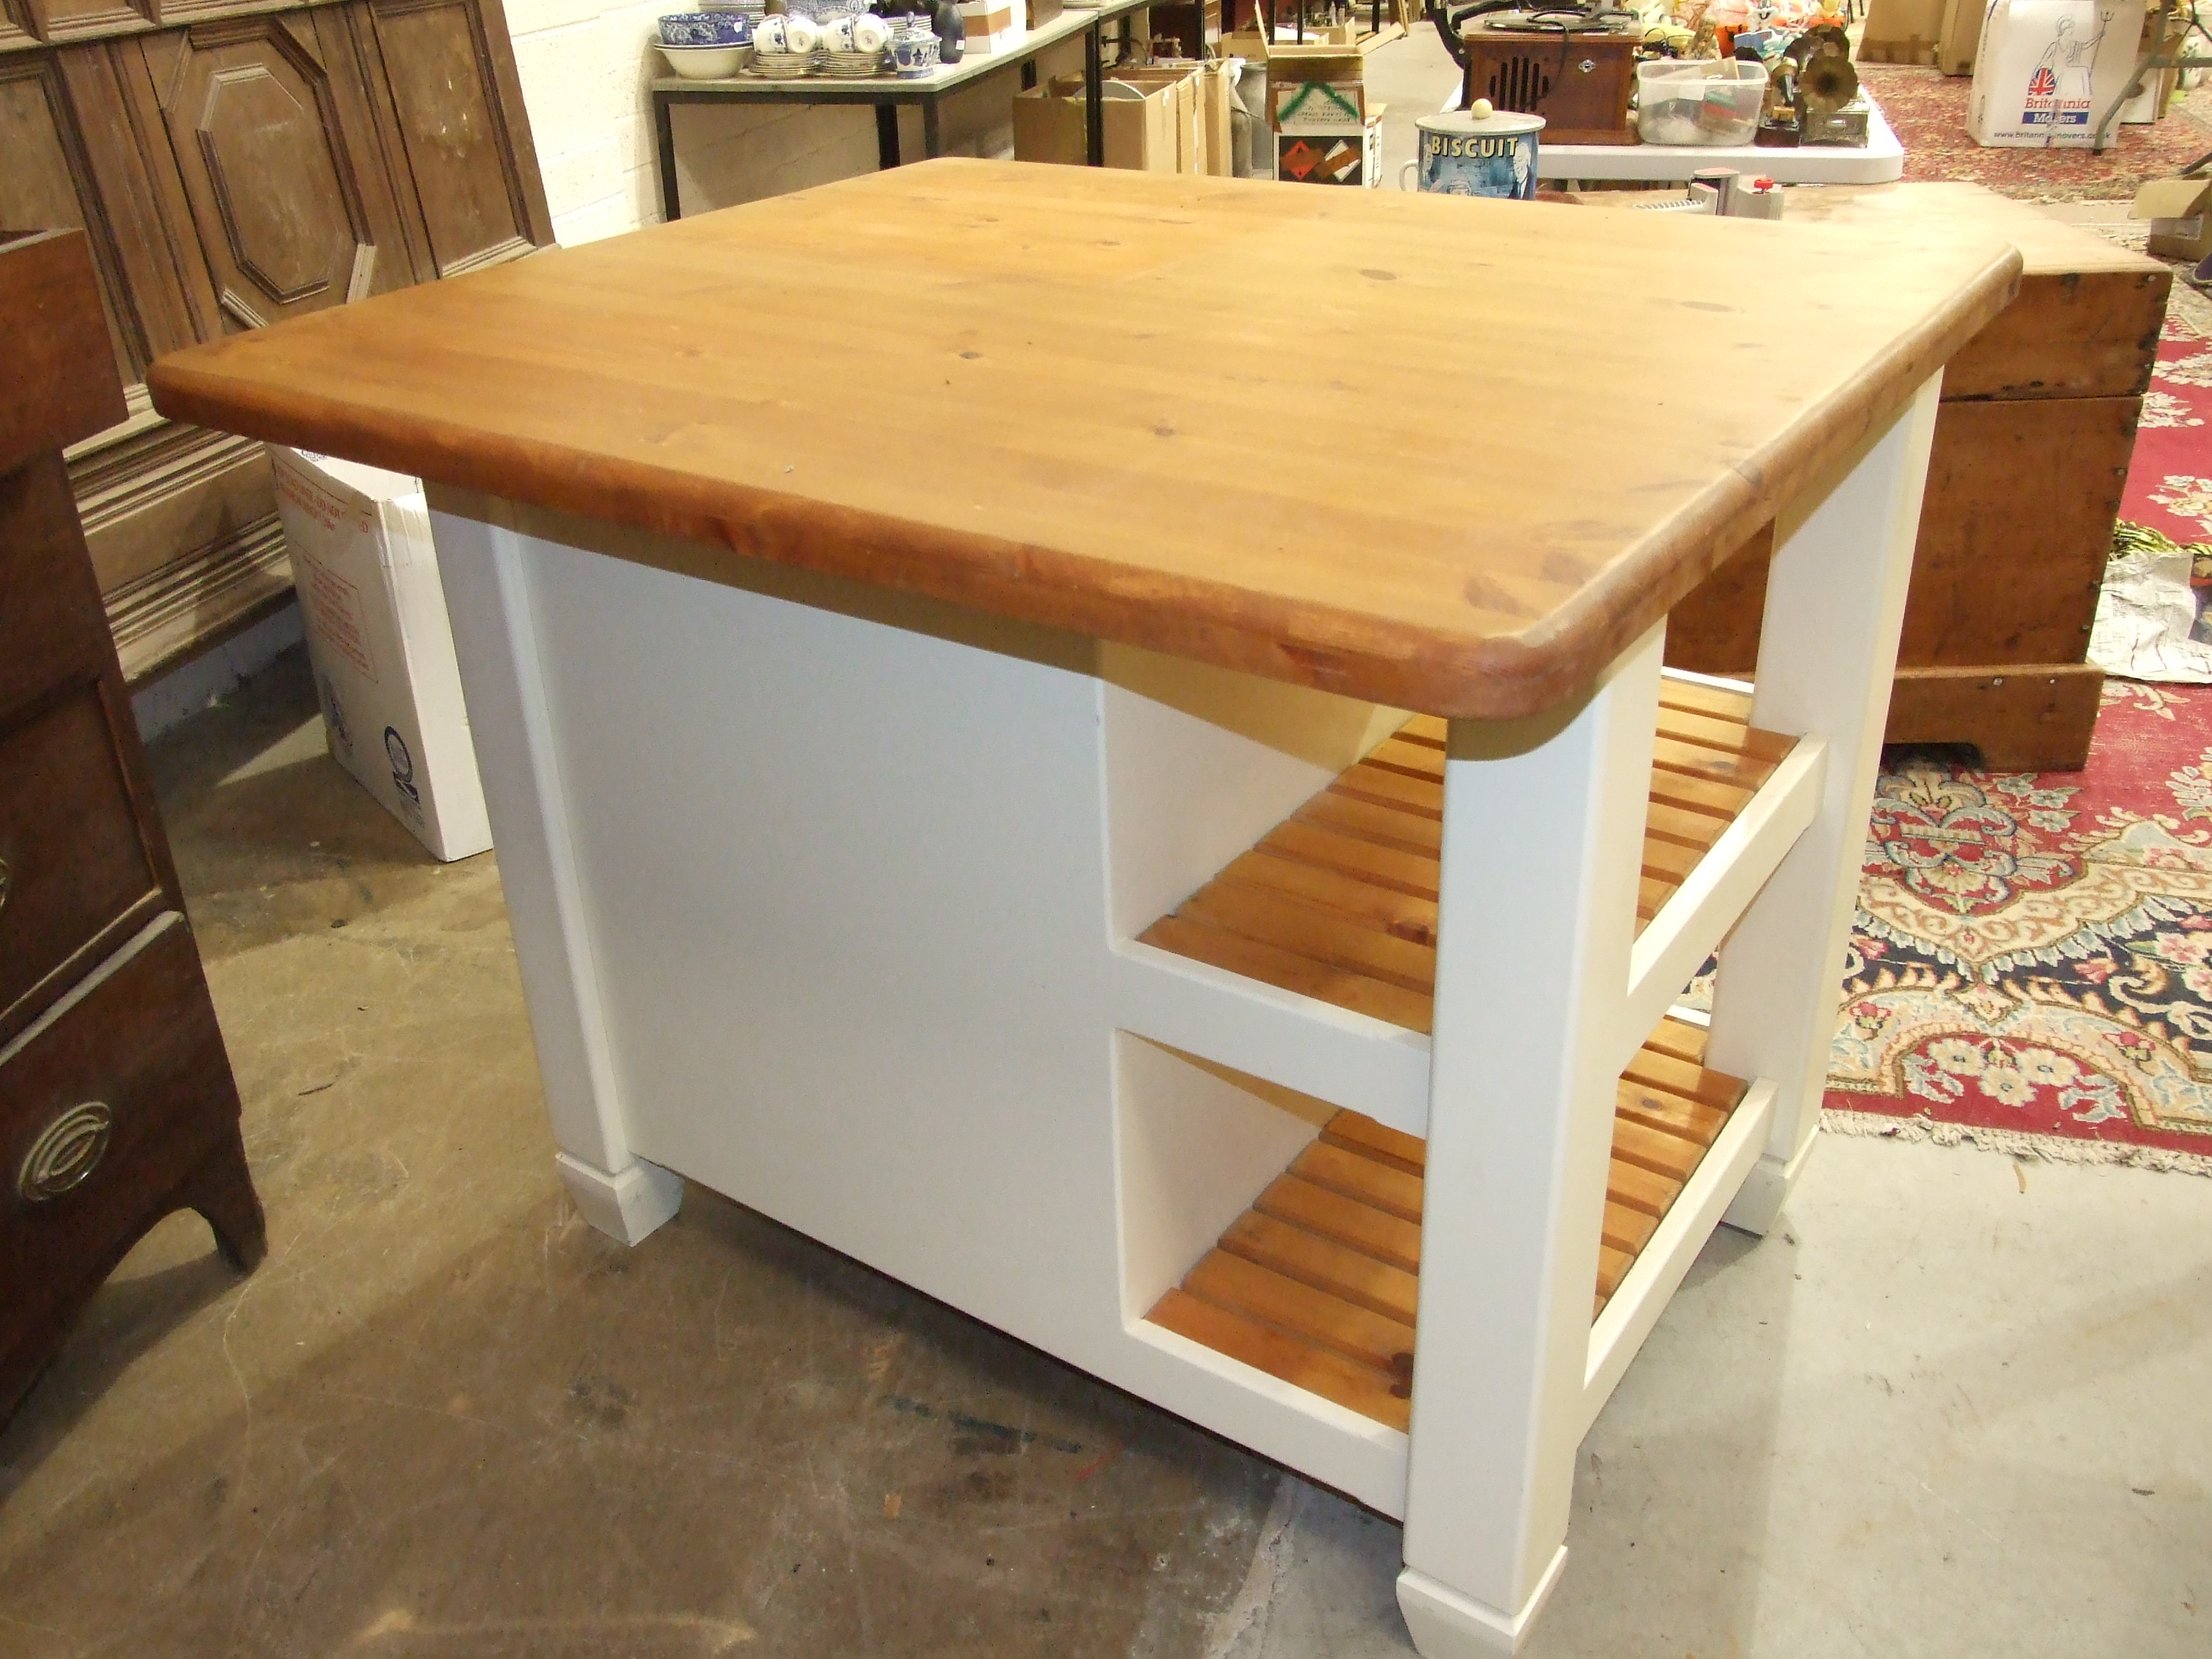 Lot 9 - A modern pine and painted wood kitchen island, 110 x 84cm, 94cm high.